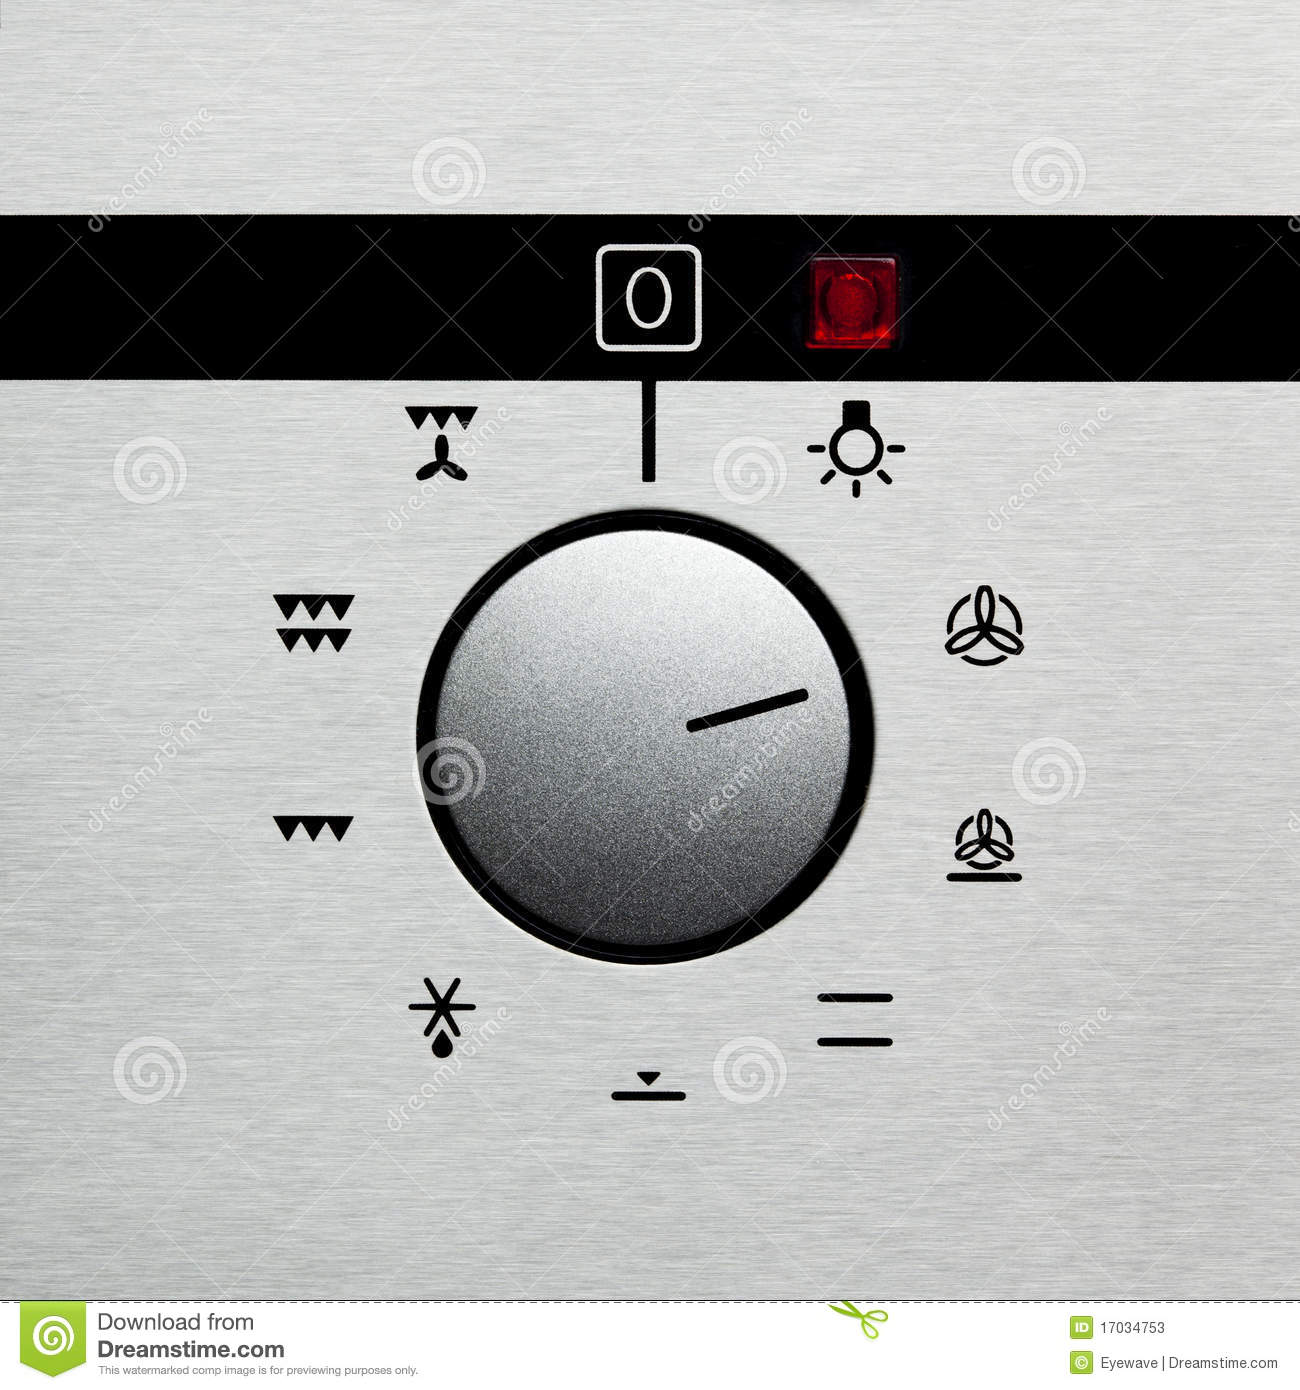 Oven dial symbols image collections symbols and meanings oven dial 2 stock image image of heat steel brushed 17034753 oven dial 2 biocorpaavc image biocorpaavc Choice Image